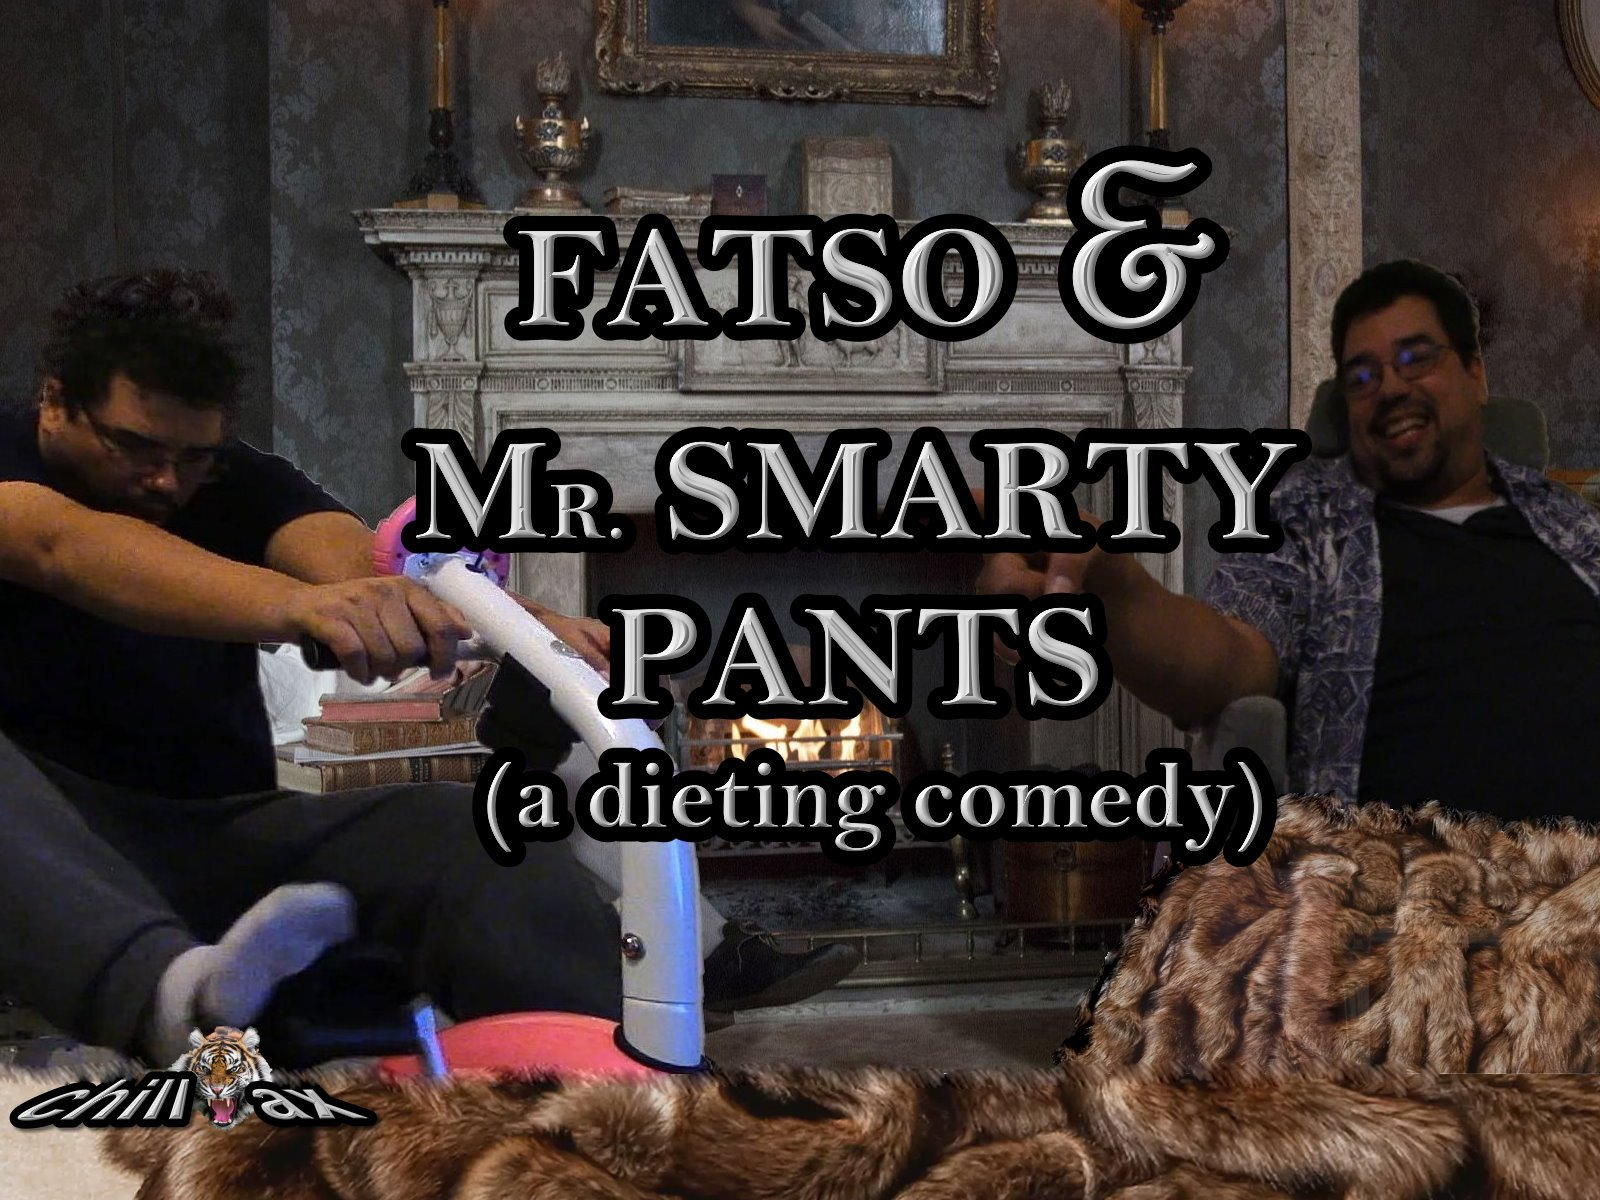 Fatso and Mr Smarty Pants (a dieting comedy) - Season 1